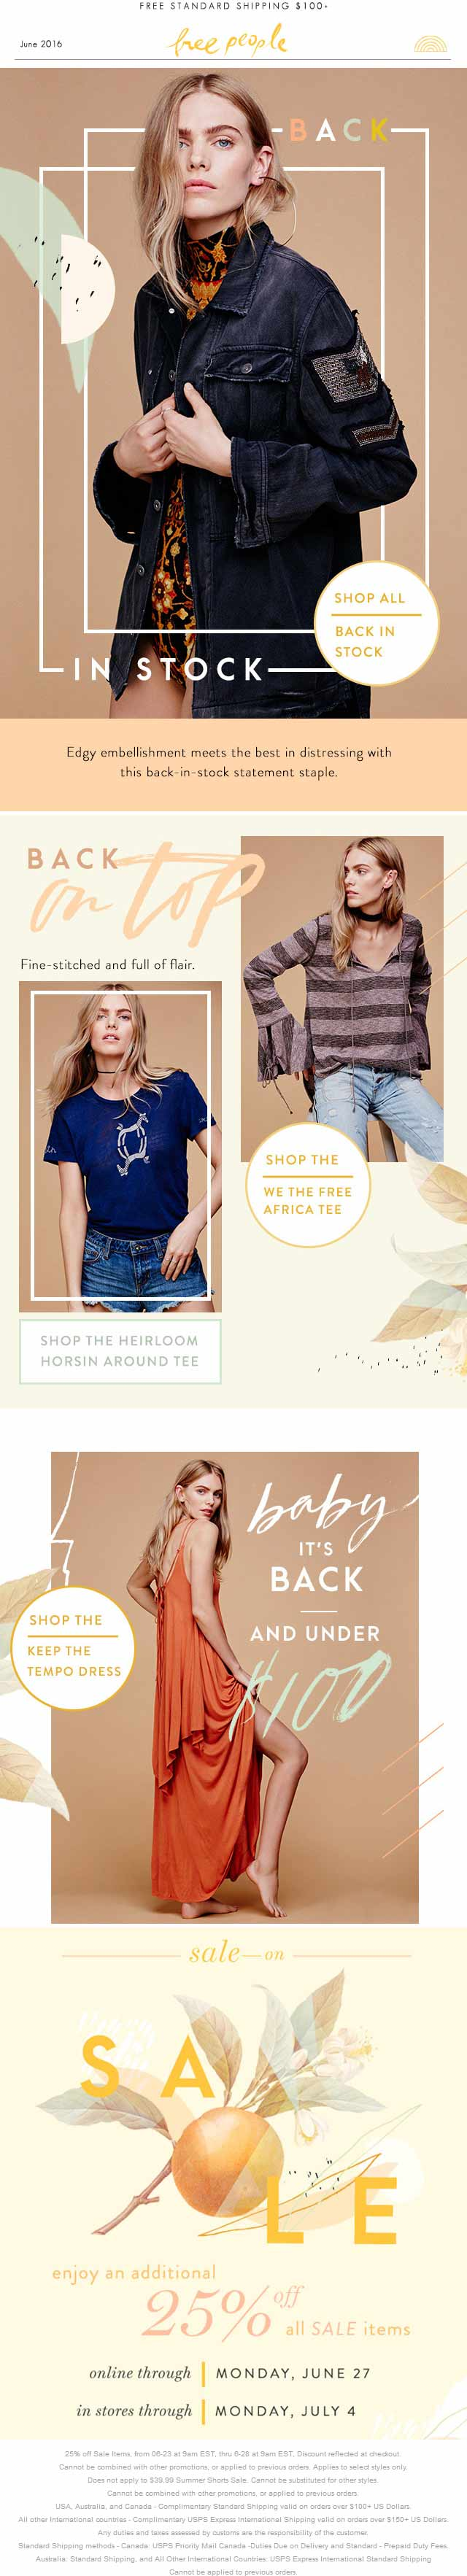 Free People Coupon June 2017 Extra 25% off sale items at Free People, ditto online